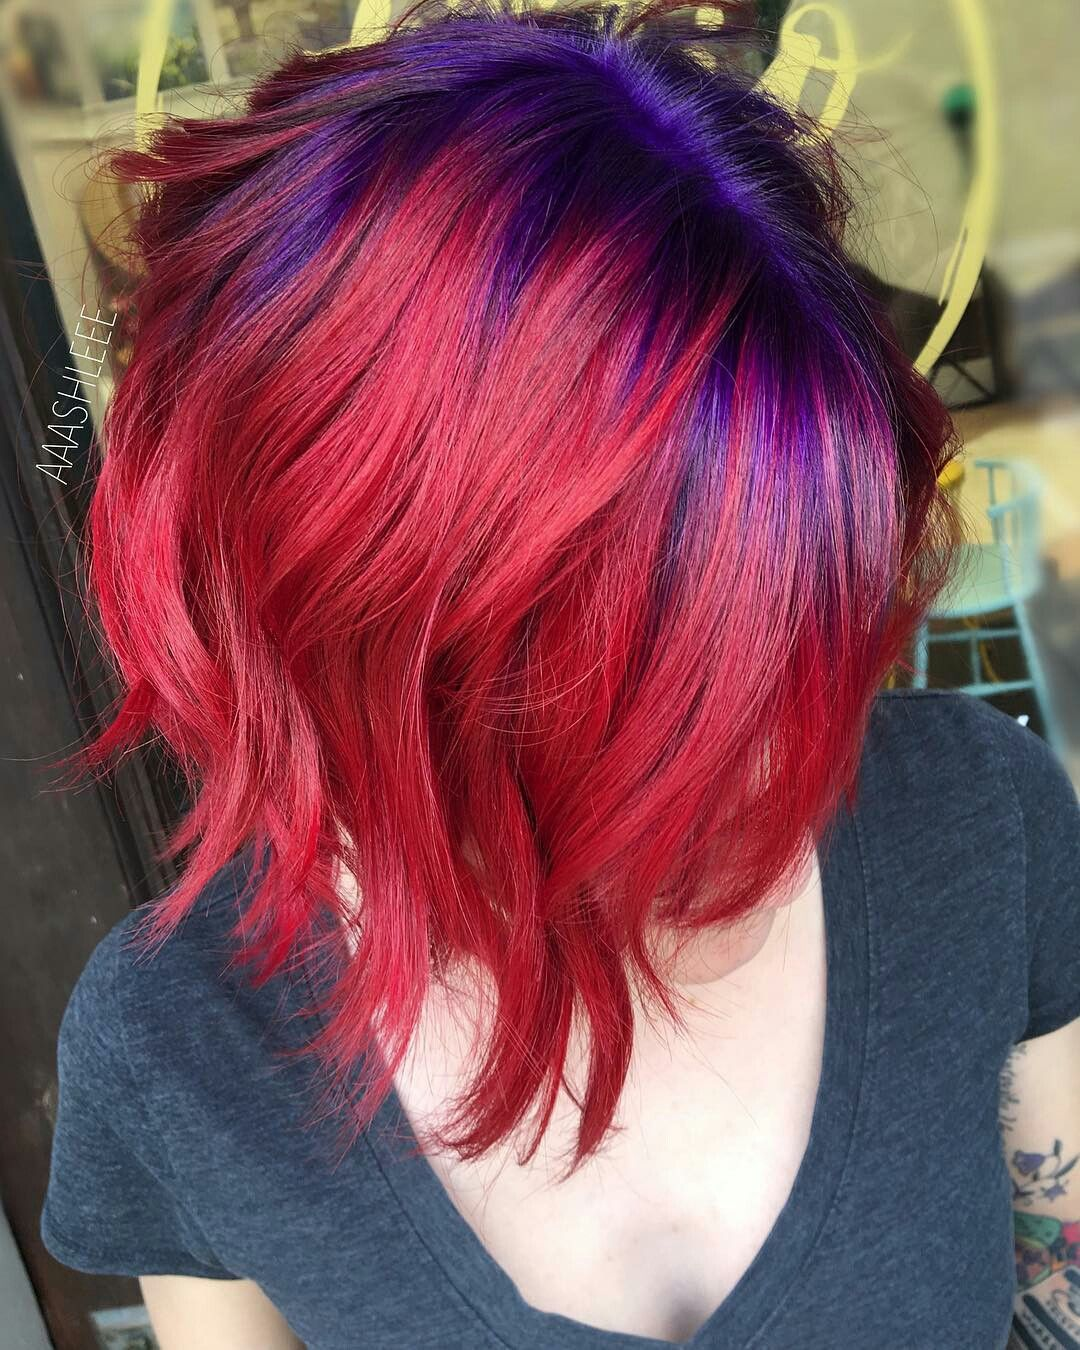 Pin by stacey boutilier on hair pinterest hair coloring hair